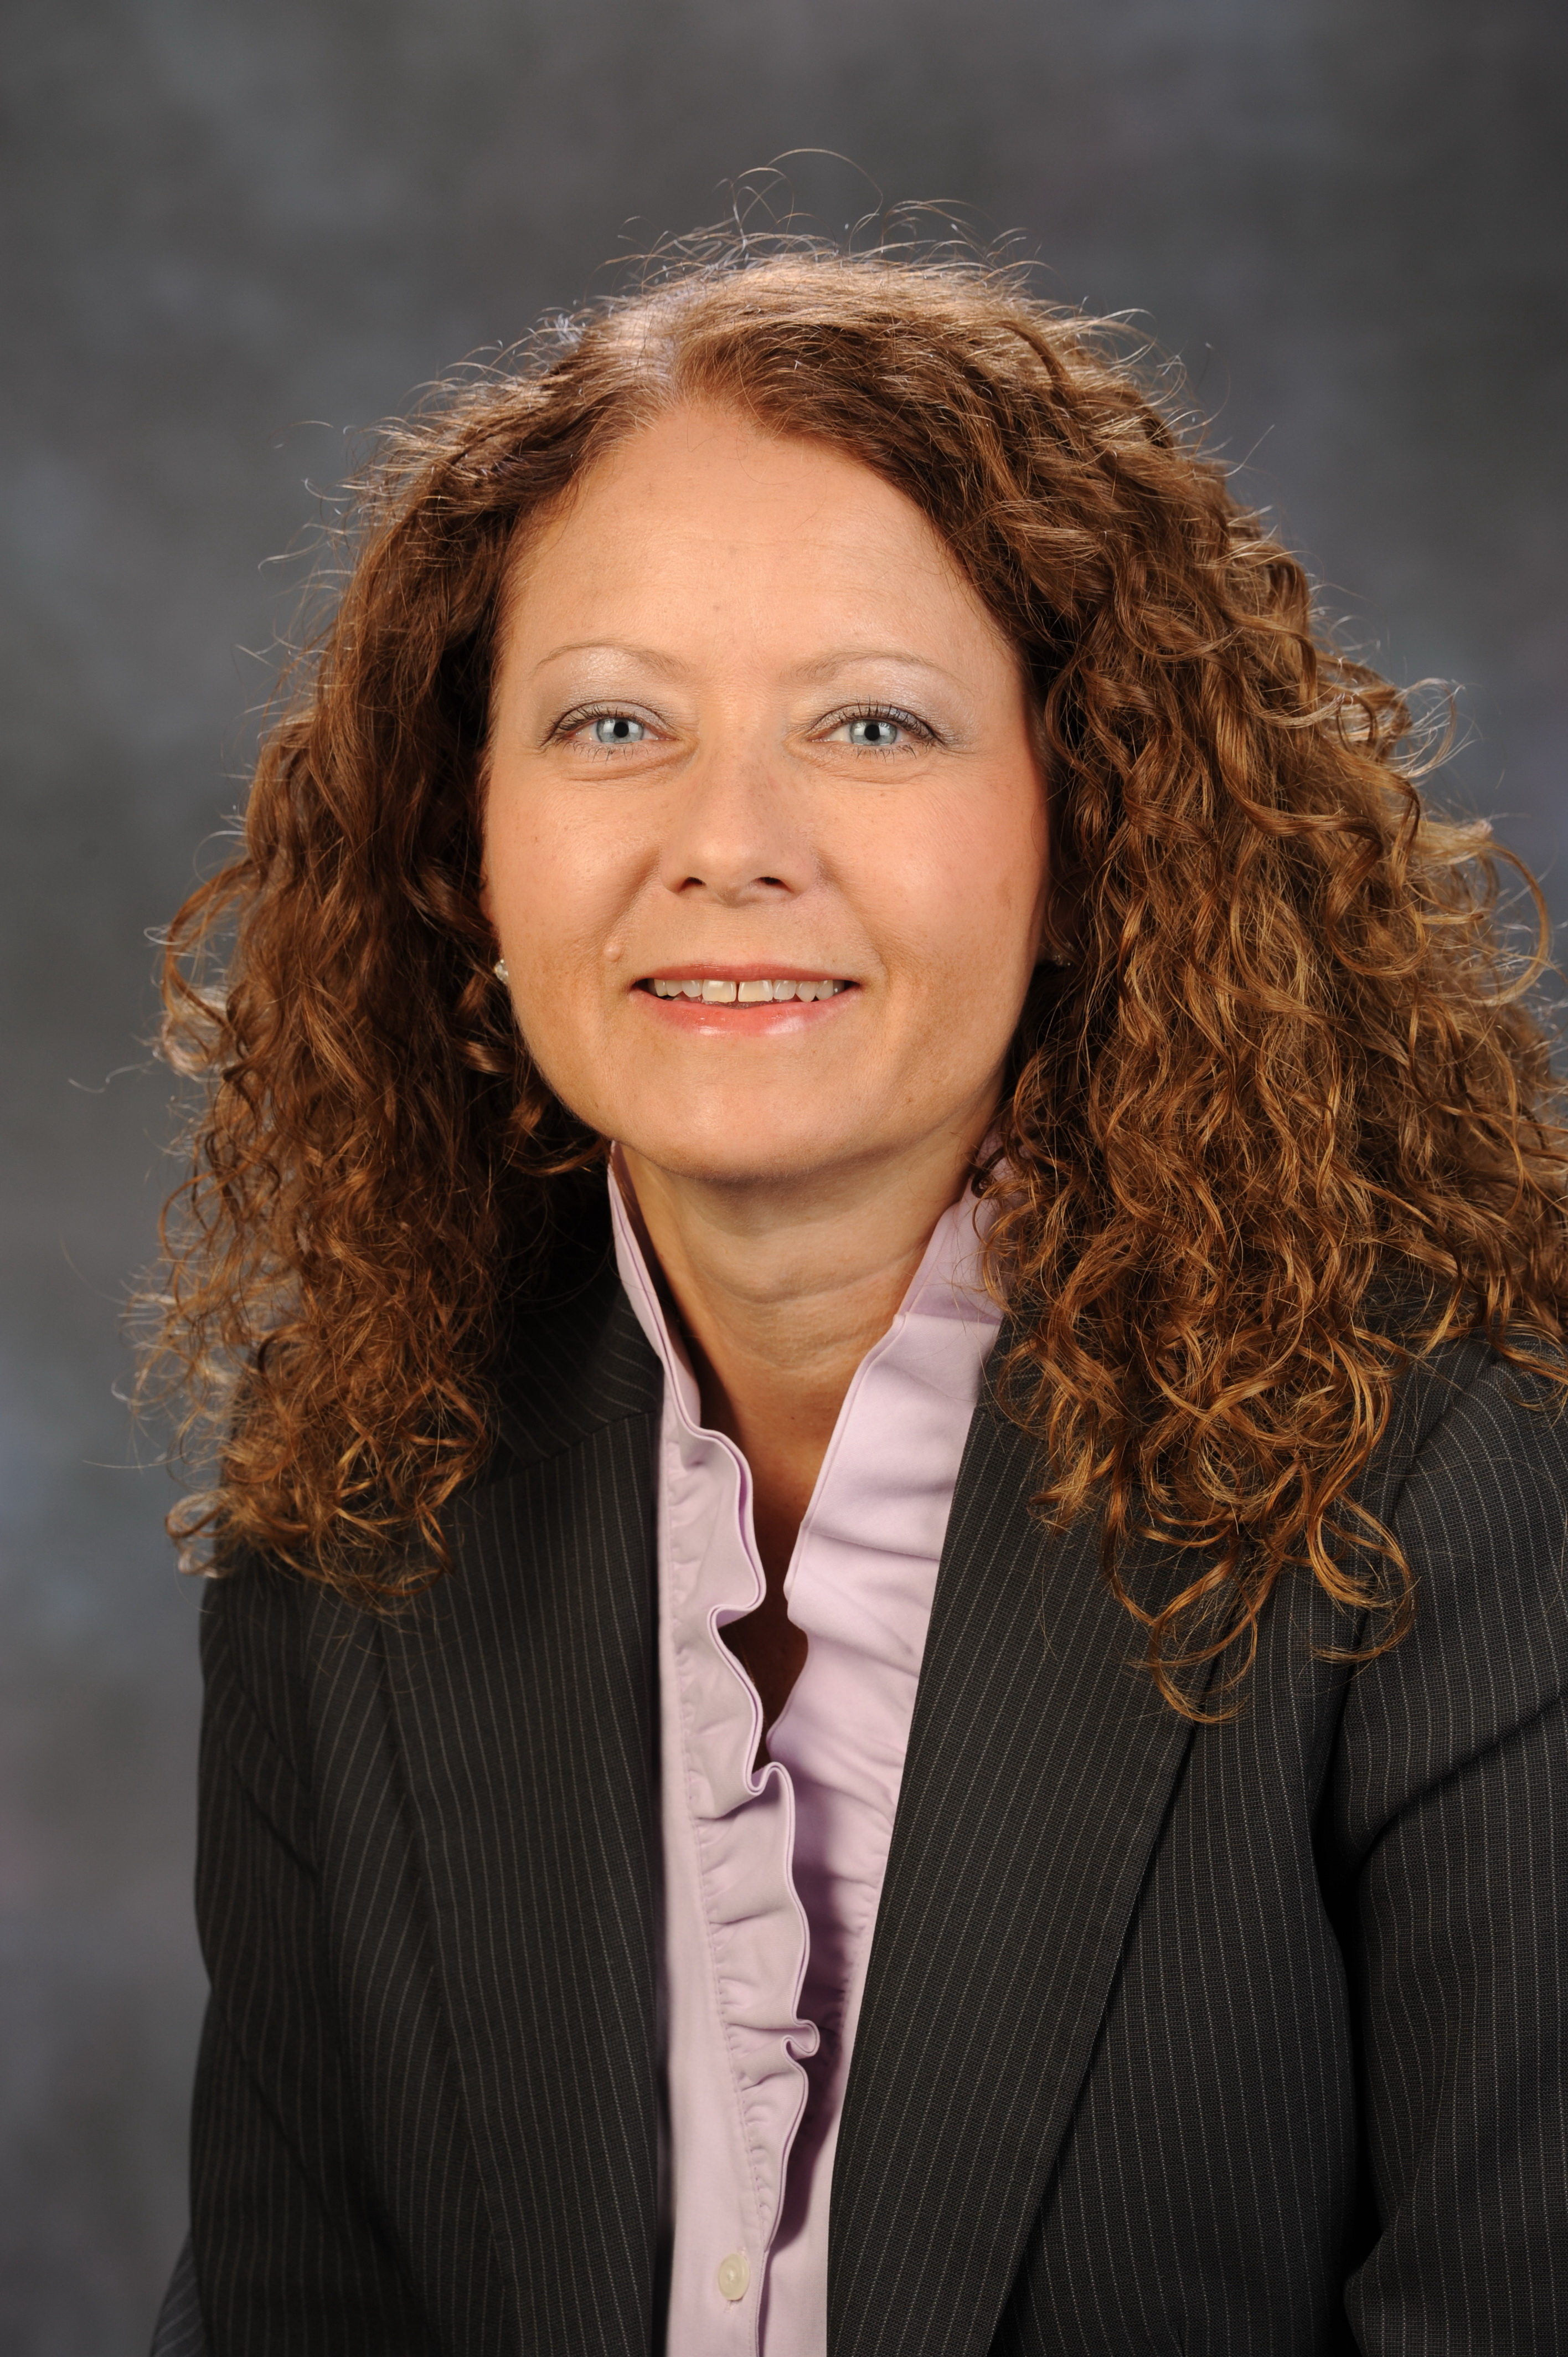 Who's who in Student Affairs? Dr. Dee Siscoe